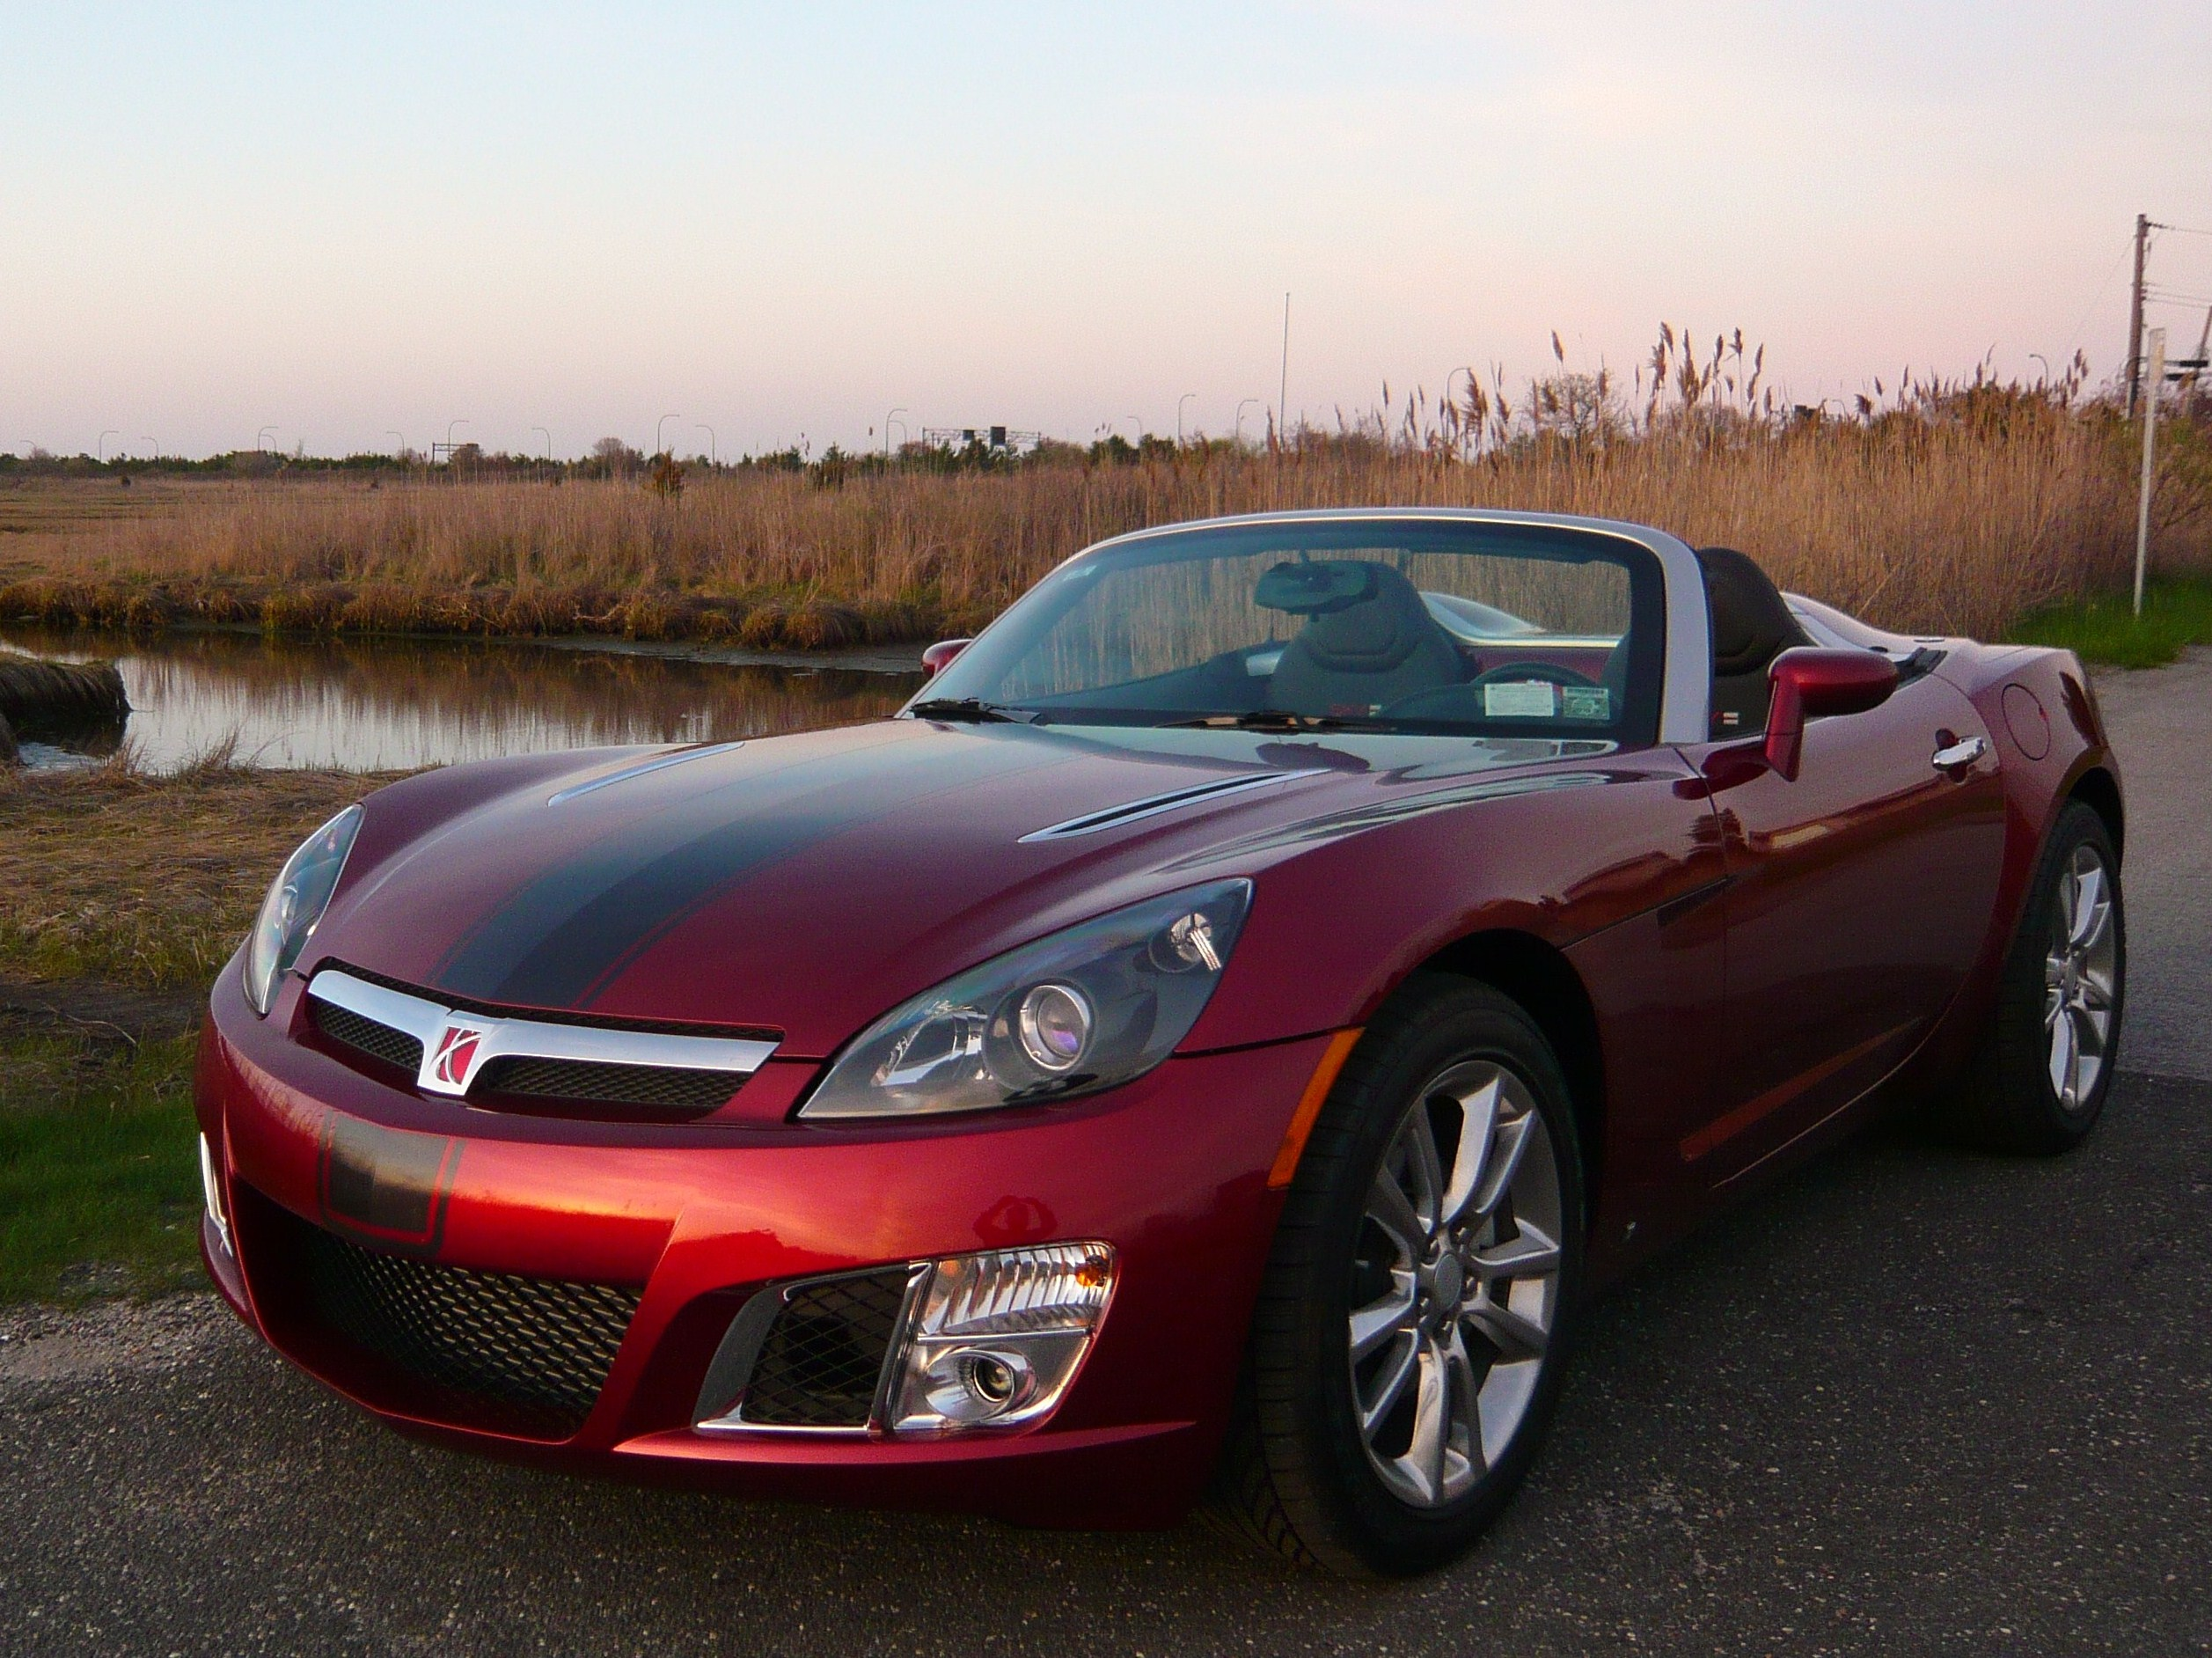 Used Convertible Cars For Sale In Snohomish County